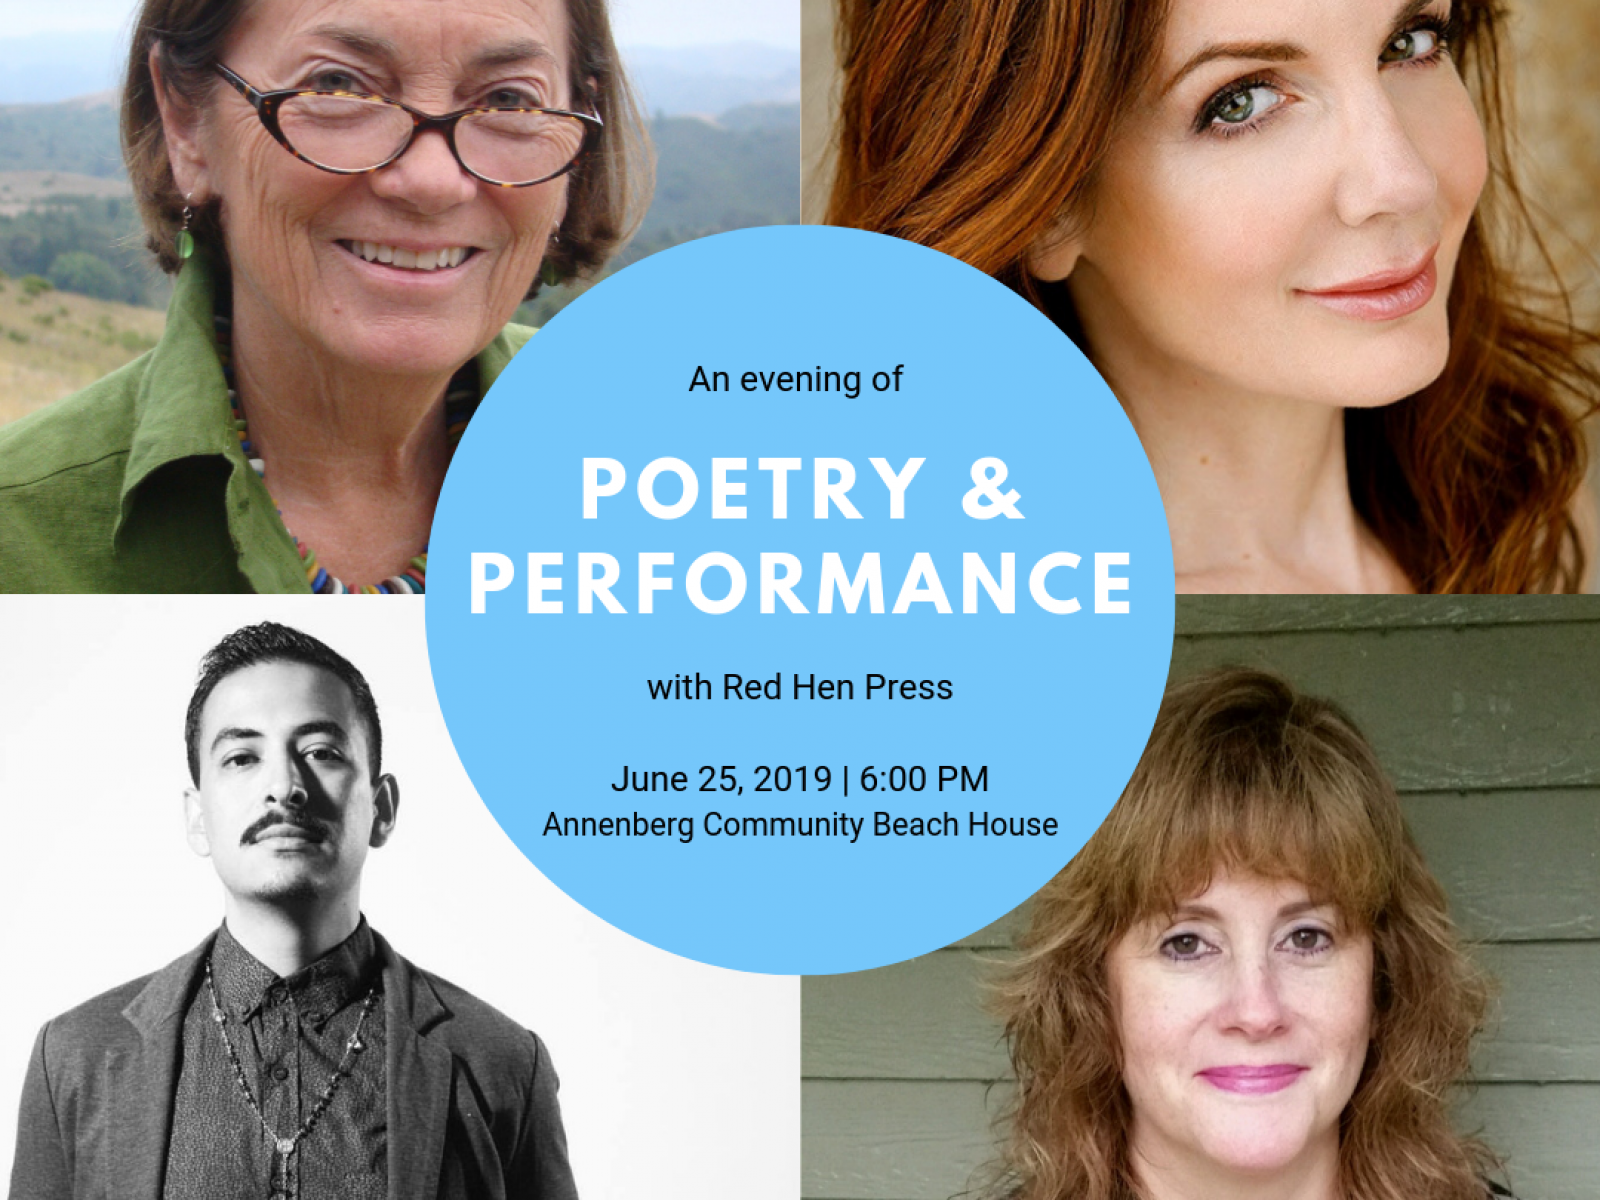 Four photographs of authors with text in center listing event details.